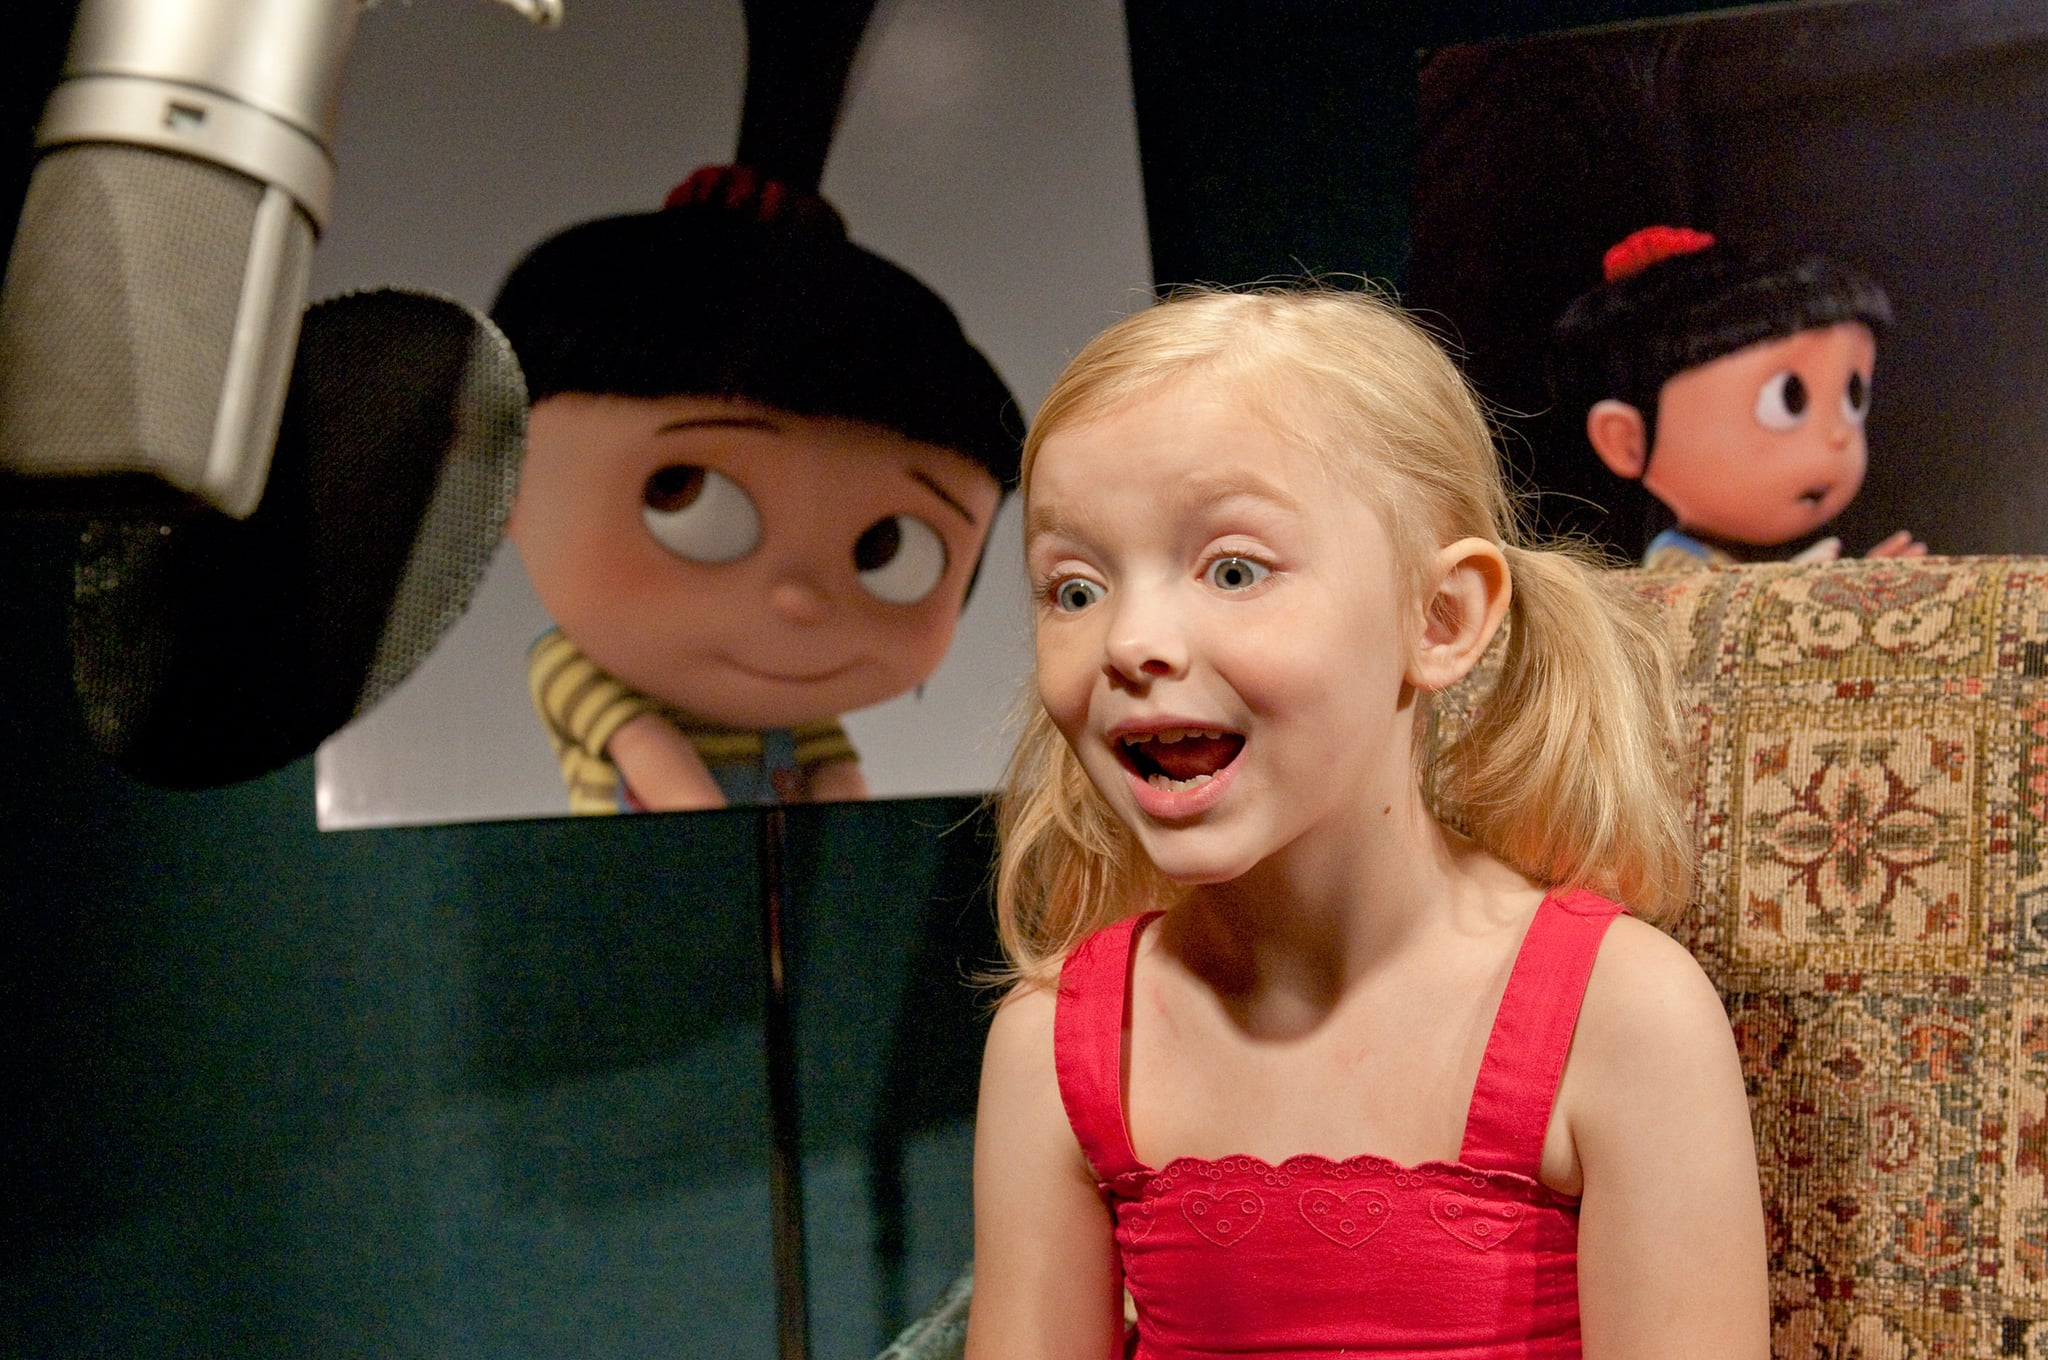 DESPICABLE ME, Elsie Fisher (voice of Agnes), 2010. ph: Suzanne Hanover/Universal/courtesy Everett Collection